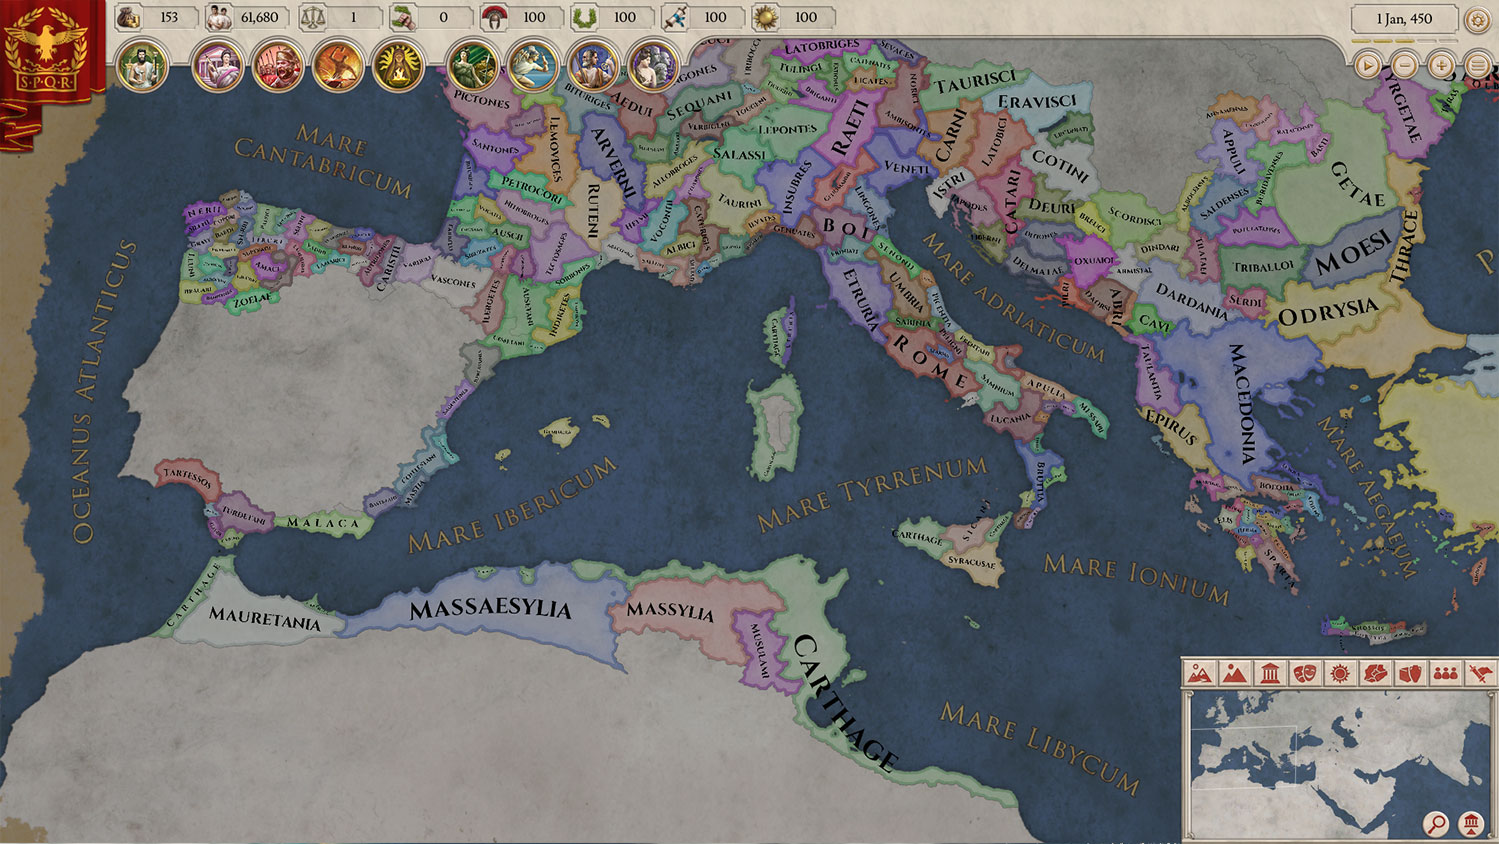 Finding the Paradox Game Within Roman History for 'Imperator: Rome